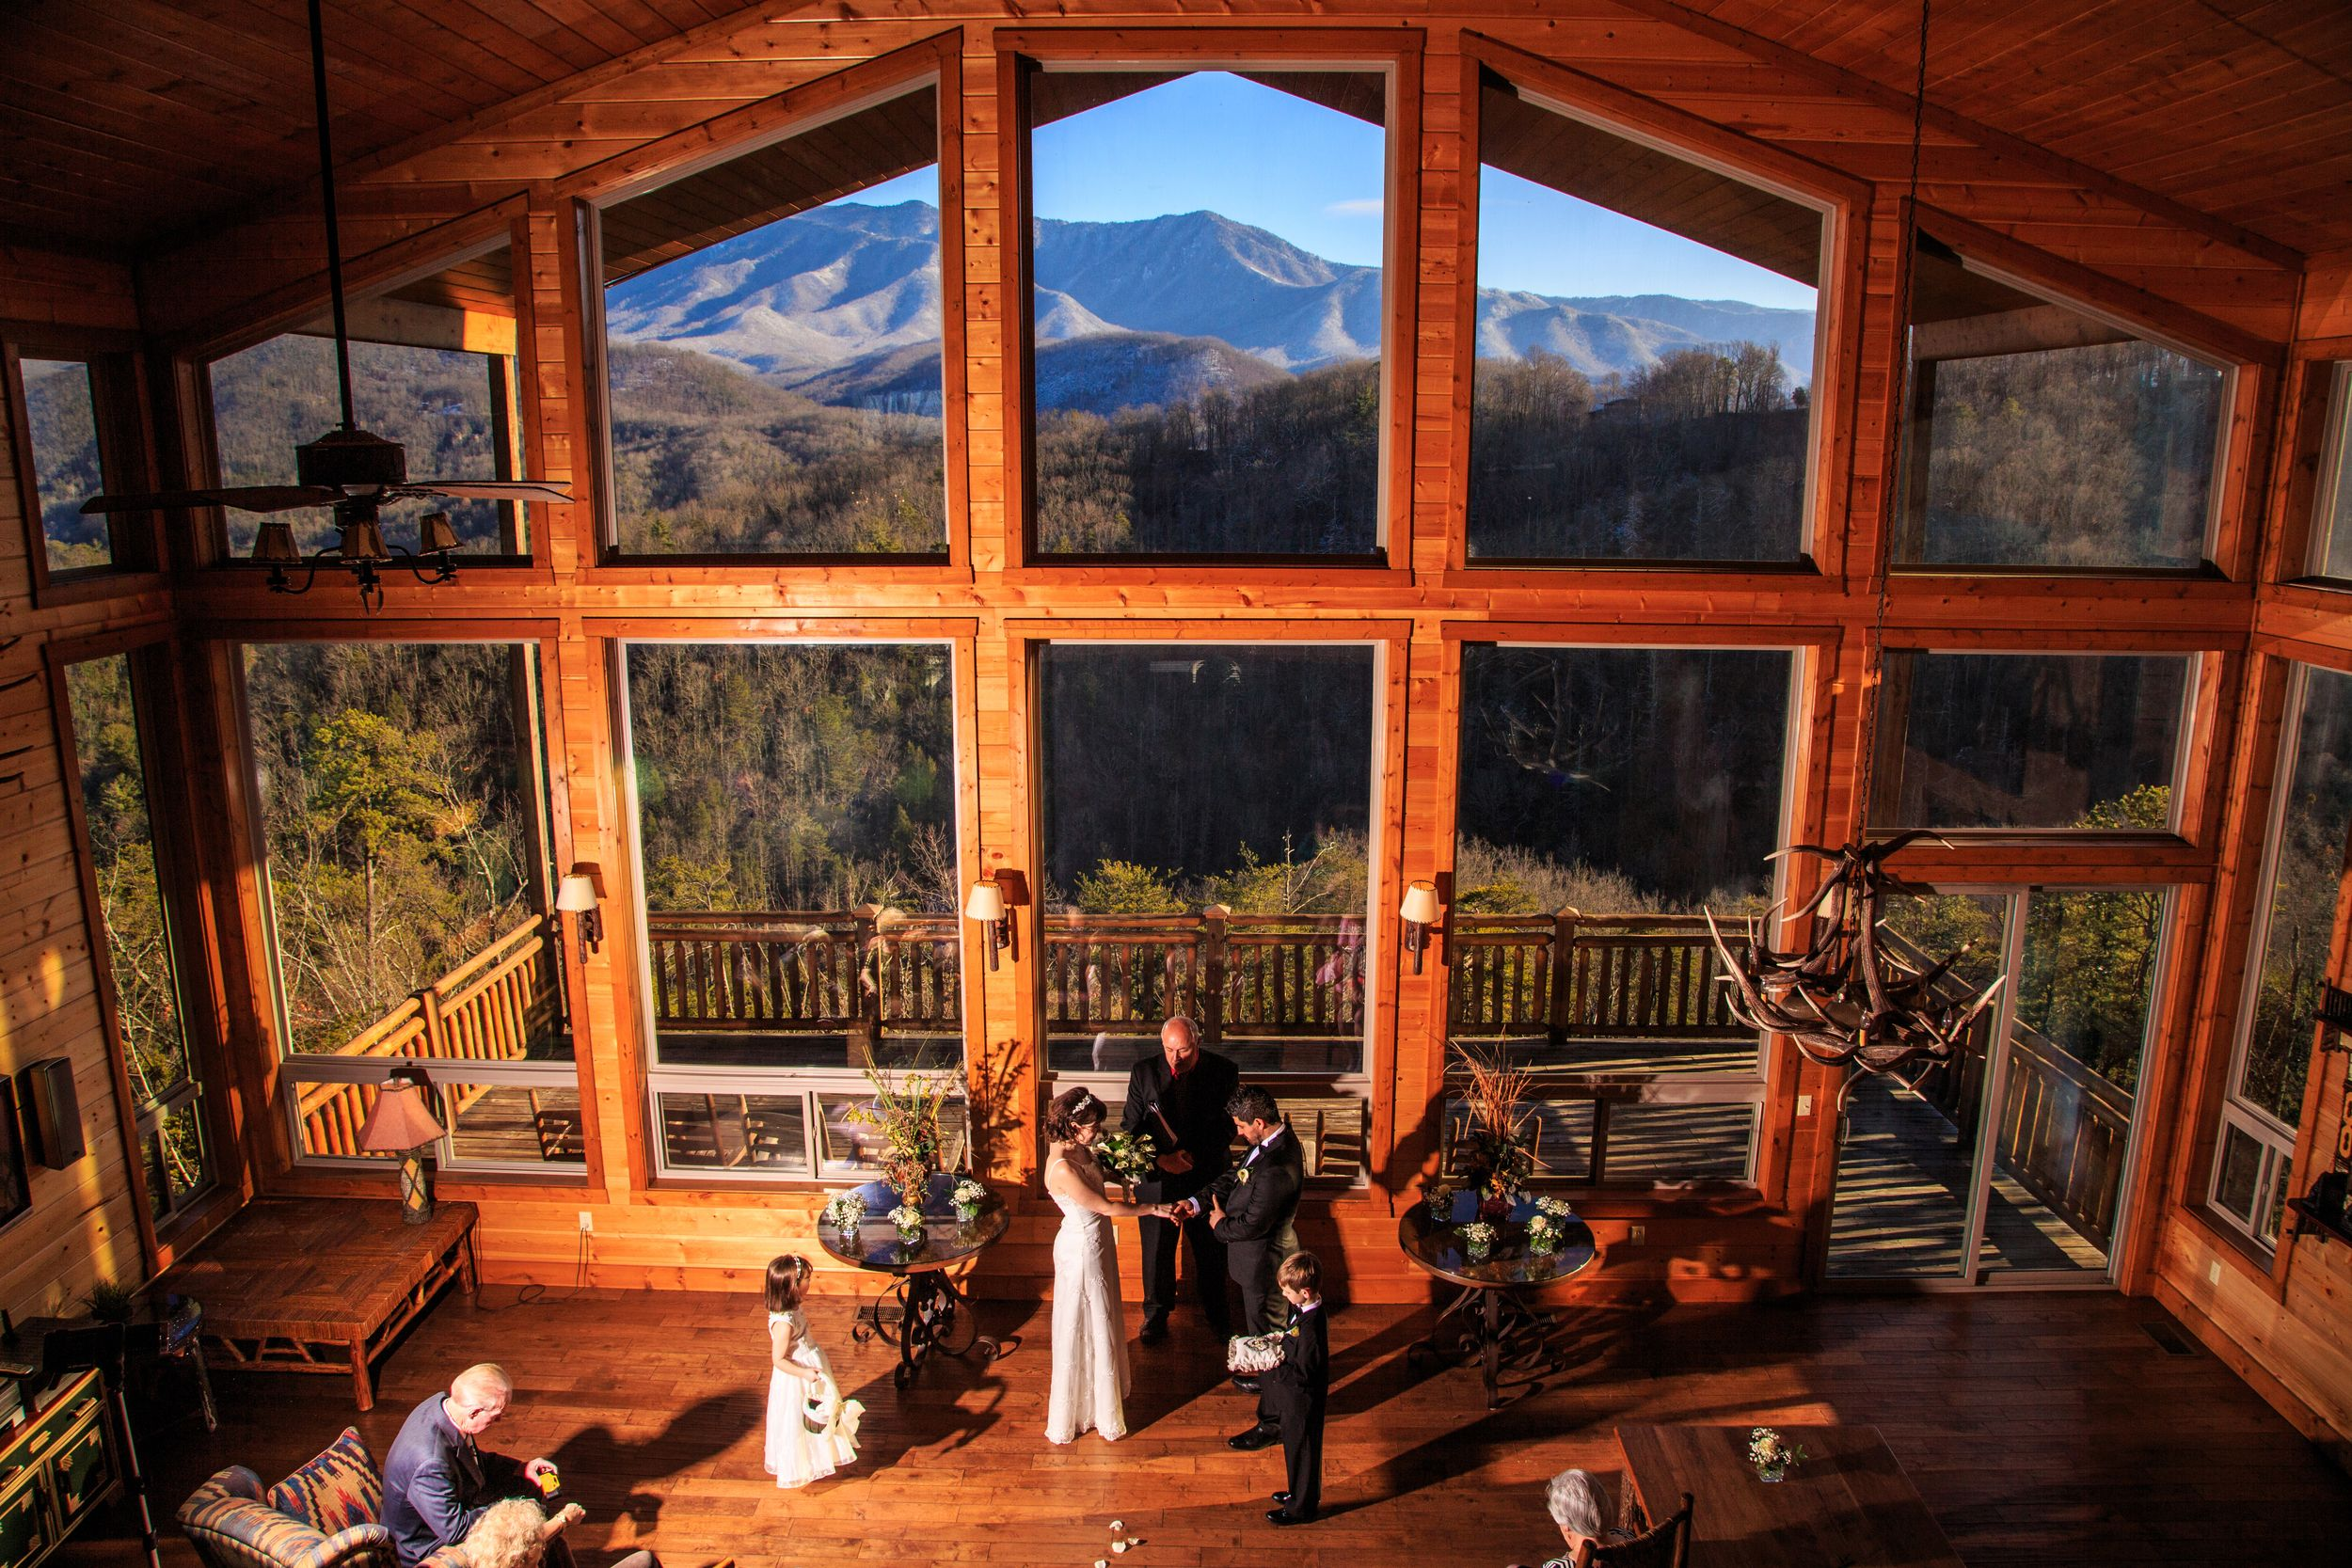 Gatlinburg Weddings Cabin Wedding Ceremonies In Gatlinburg Flower Mountain Gatlinburg Pigeon Gatlinburg Weddings Cabin Wedding Tennessee Wedding Venues